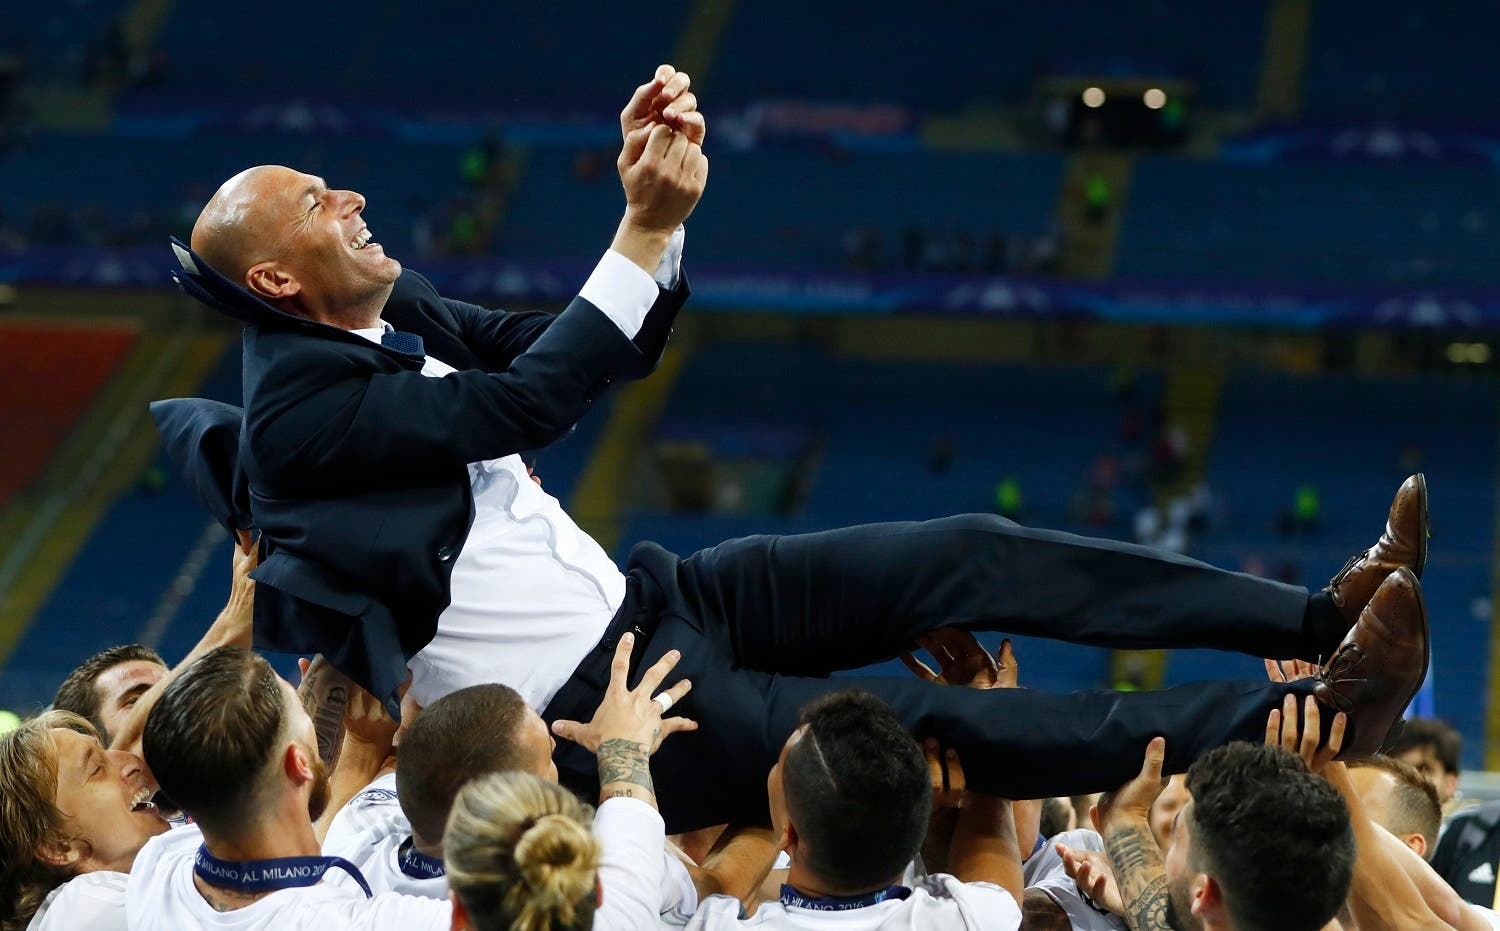 Madrid's 5-3 penalty shootout win over city rival Atletico Madrid in a Champions League final that finished 1-1 after extra time Saturday also brought Zidane back to the pinnacle of the game. (Reuters)